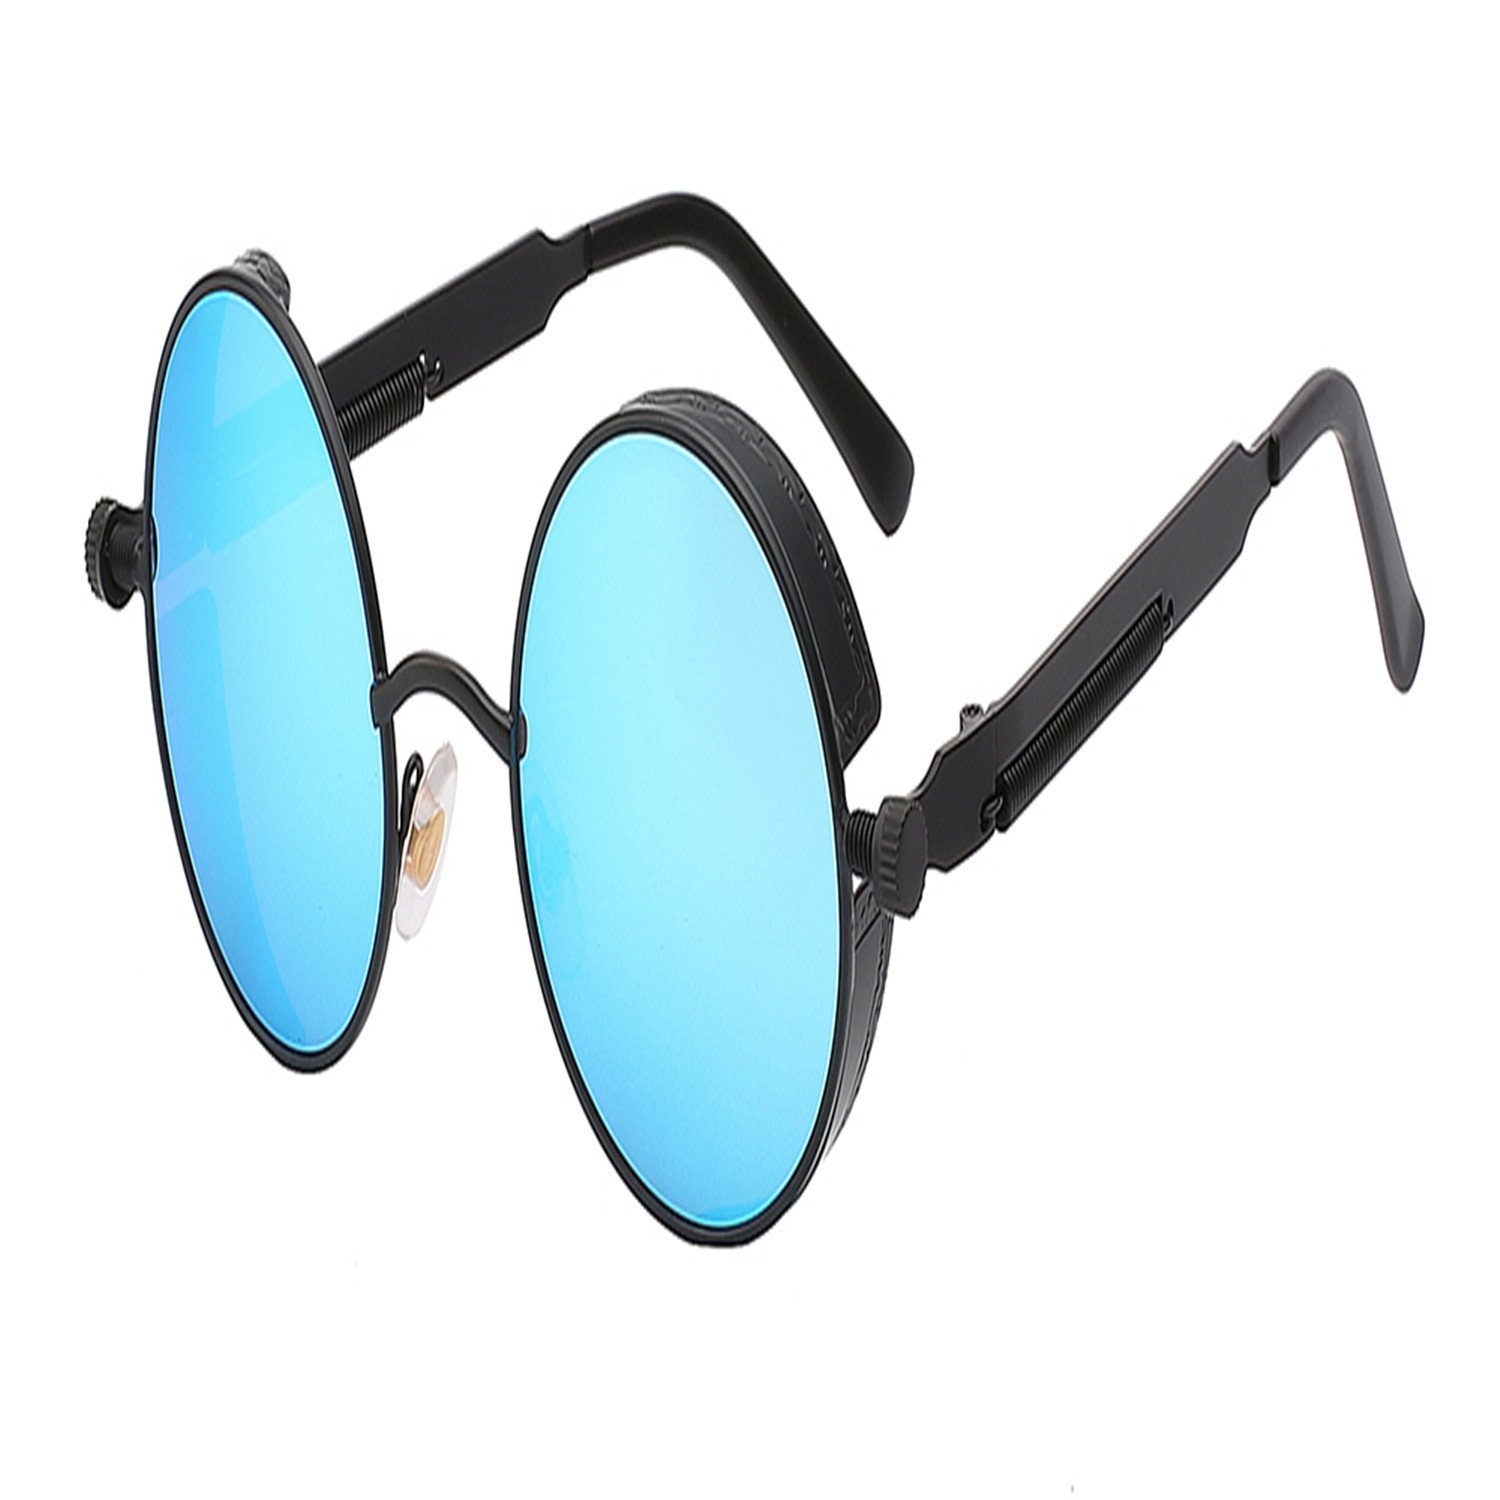 Amazon.com: Sville Mary Sunglasses Retro Vintage Gafas ...